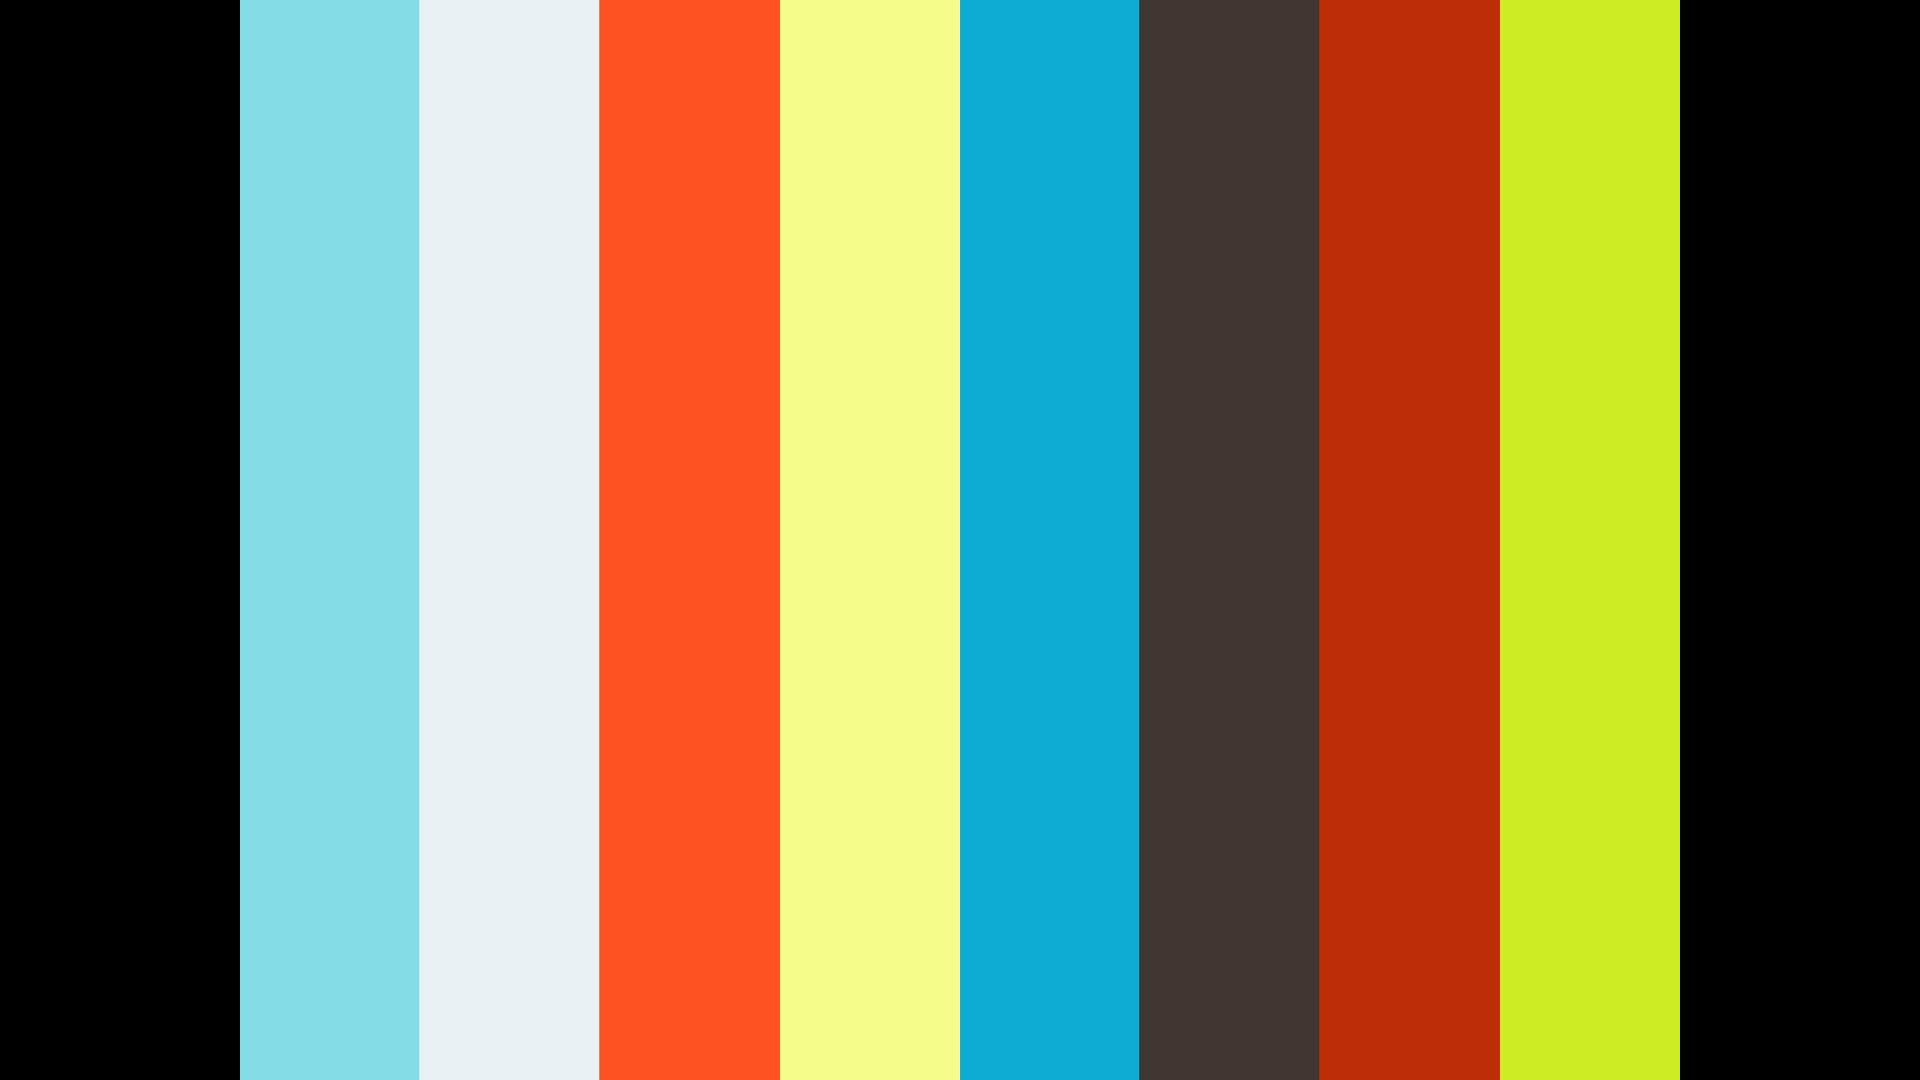 Academy Graduation - Rt Hon Cheryl Gillan MP message